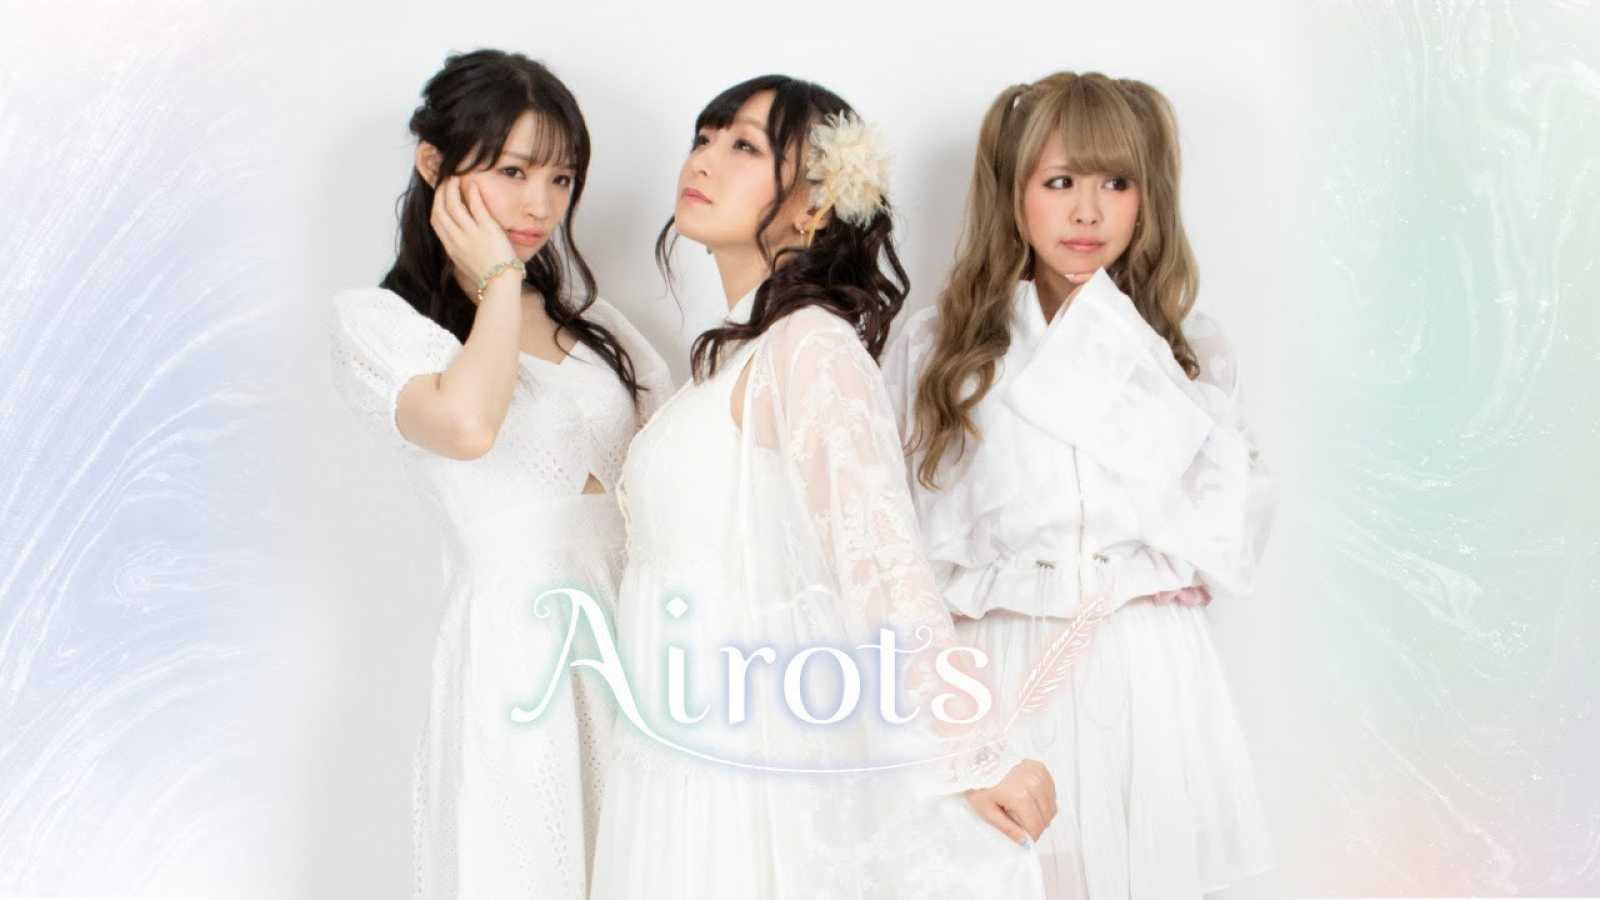 Airots © Airots. All rights reserved.